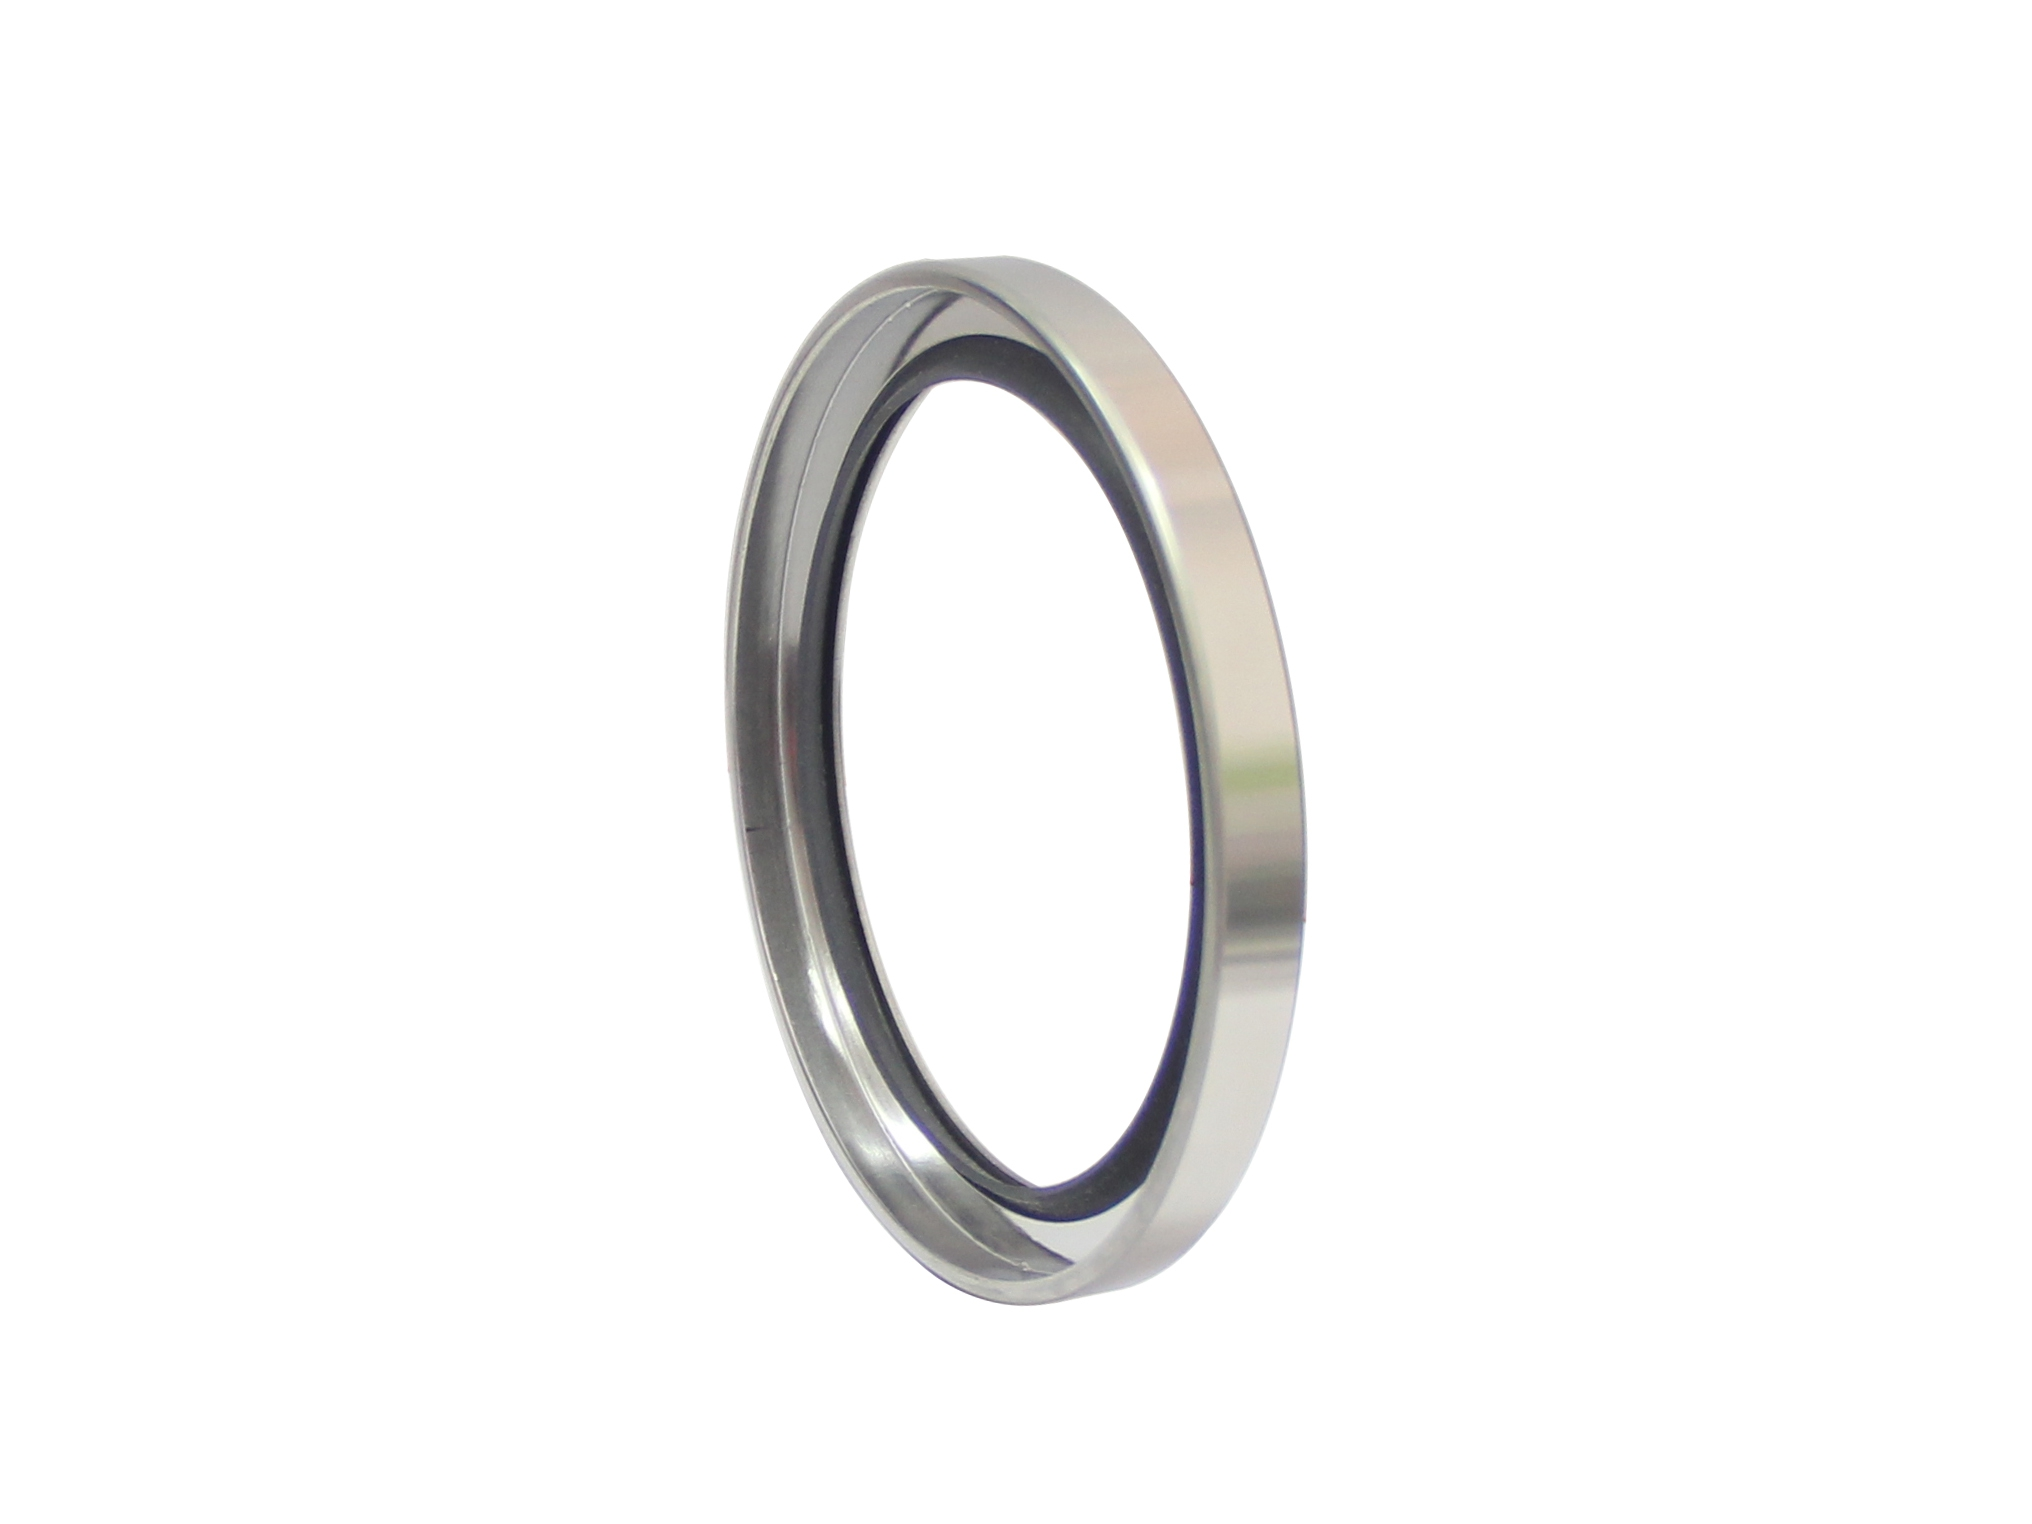 DSH-Oil Seal Types, Single Lip Ptfe Stainless Steel Rotary Shaft Seal